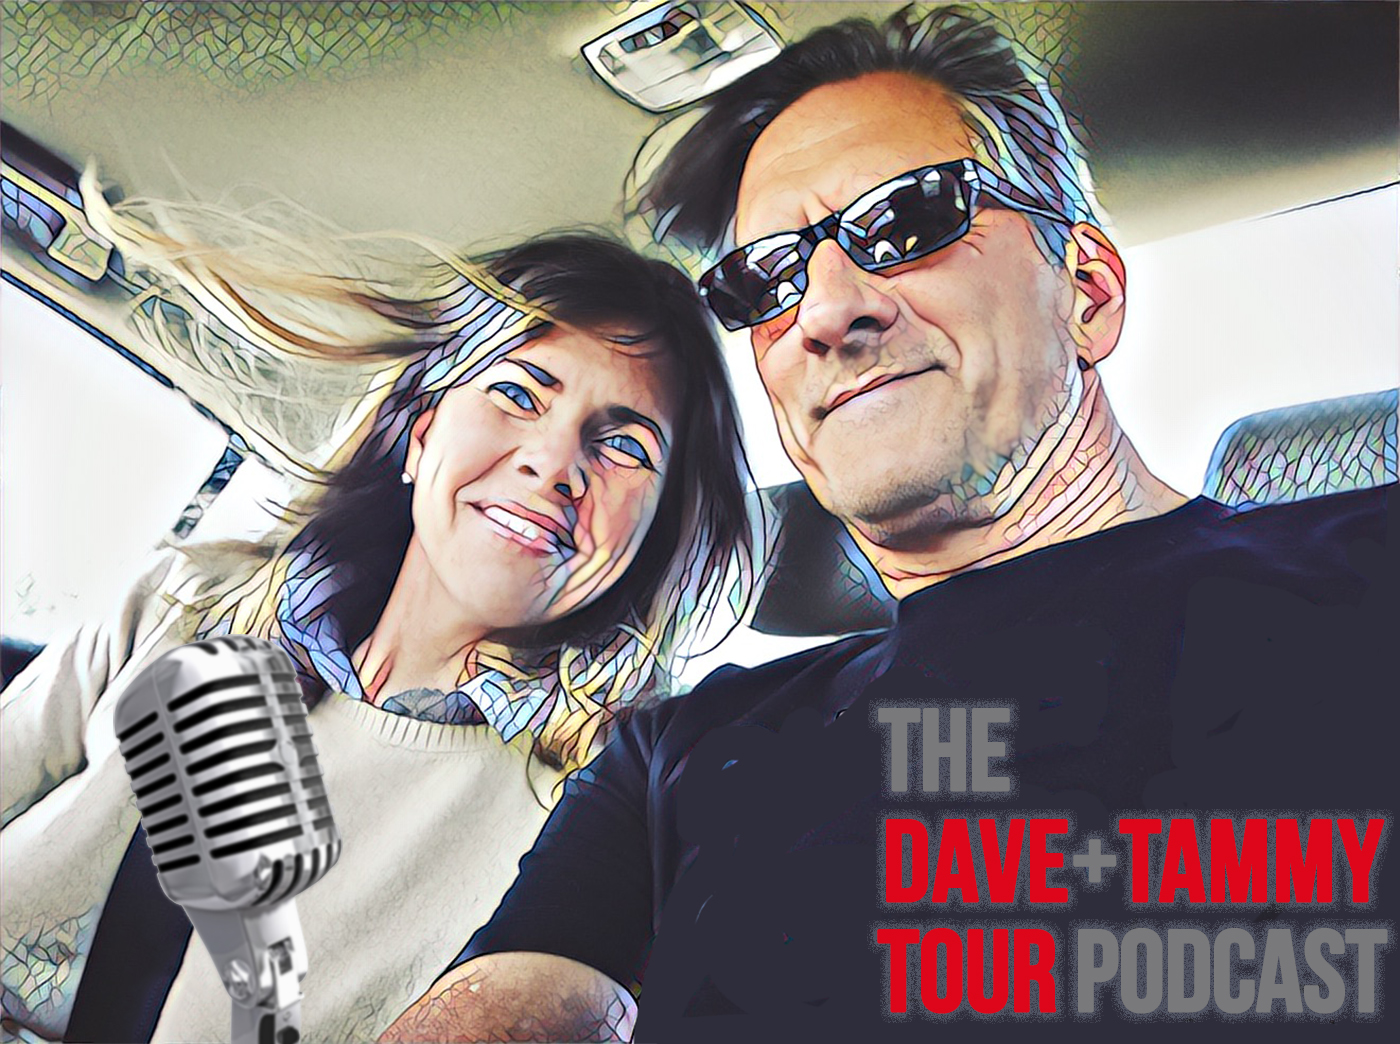 THE DAVE + TAMMY TOUR PODCAST IS ON iTUNES